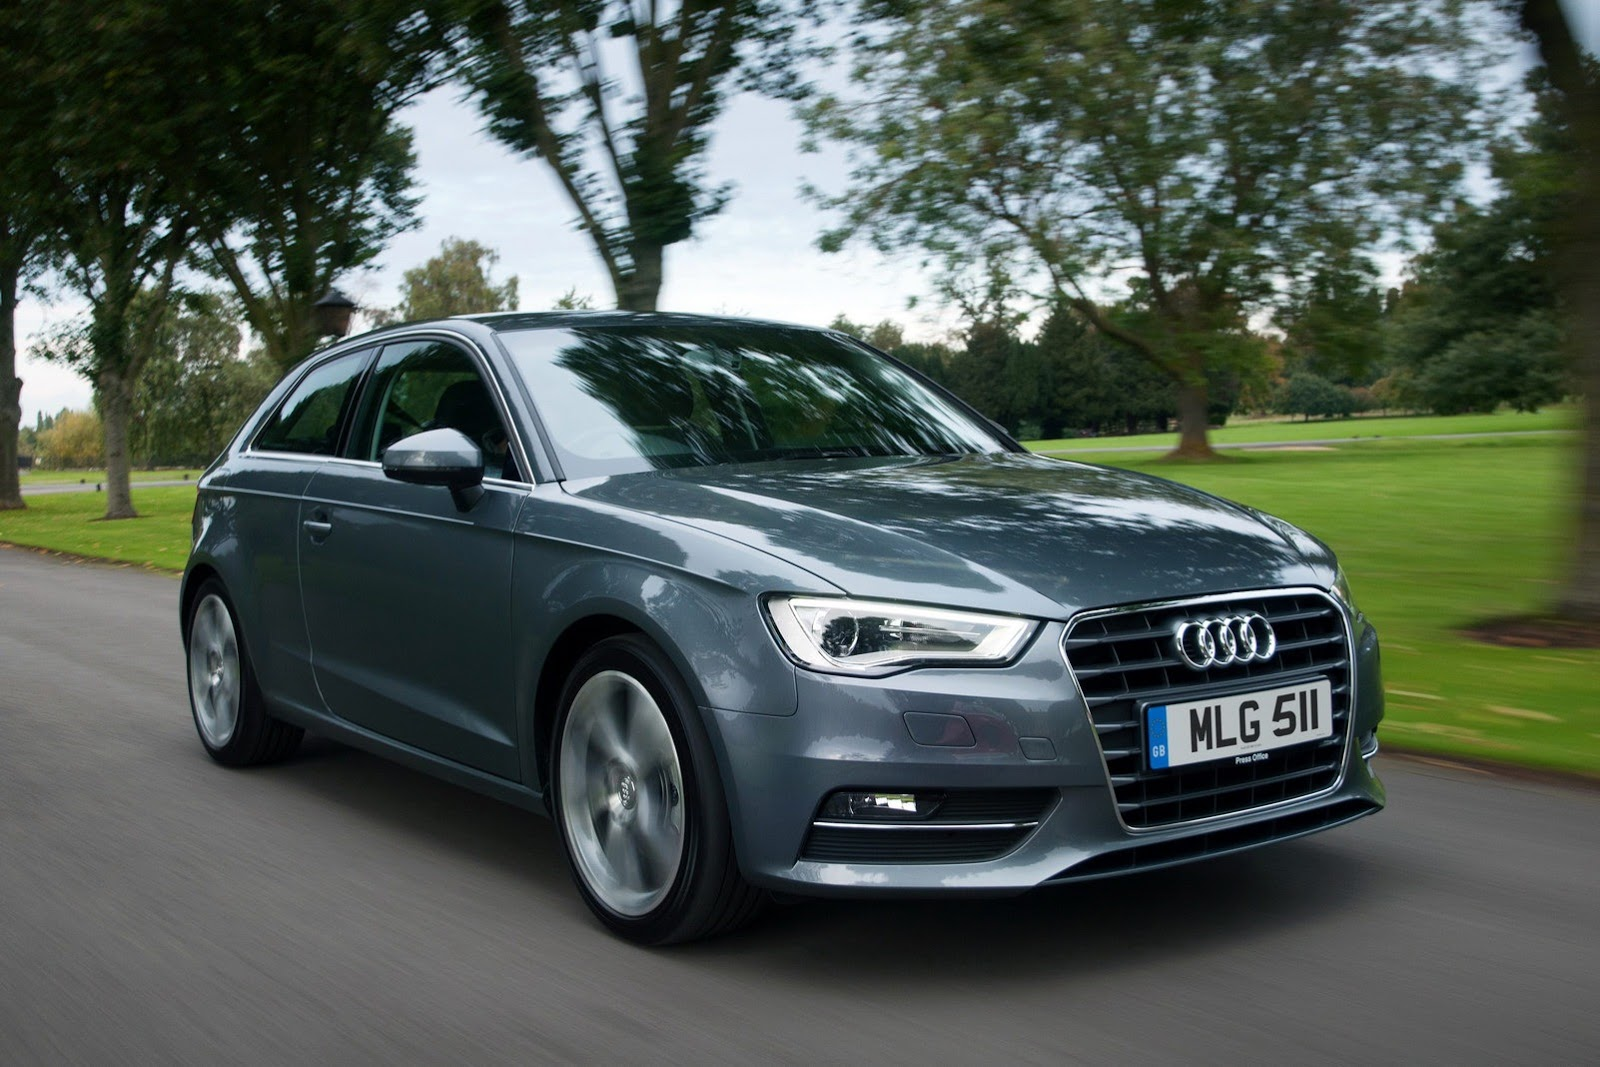 audi a3 1 2 tfsi is surprisingly economical in britain autoevolution. Black Bedroom Furniture Sets. Home Design Ideas